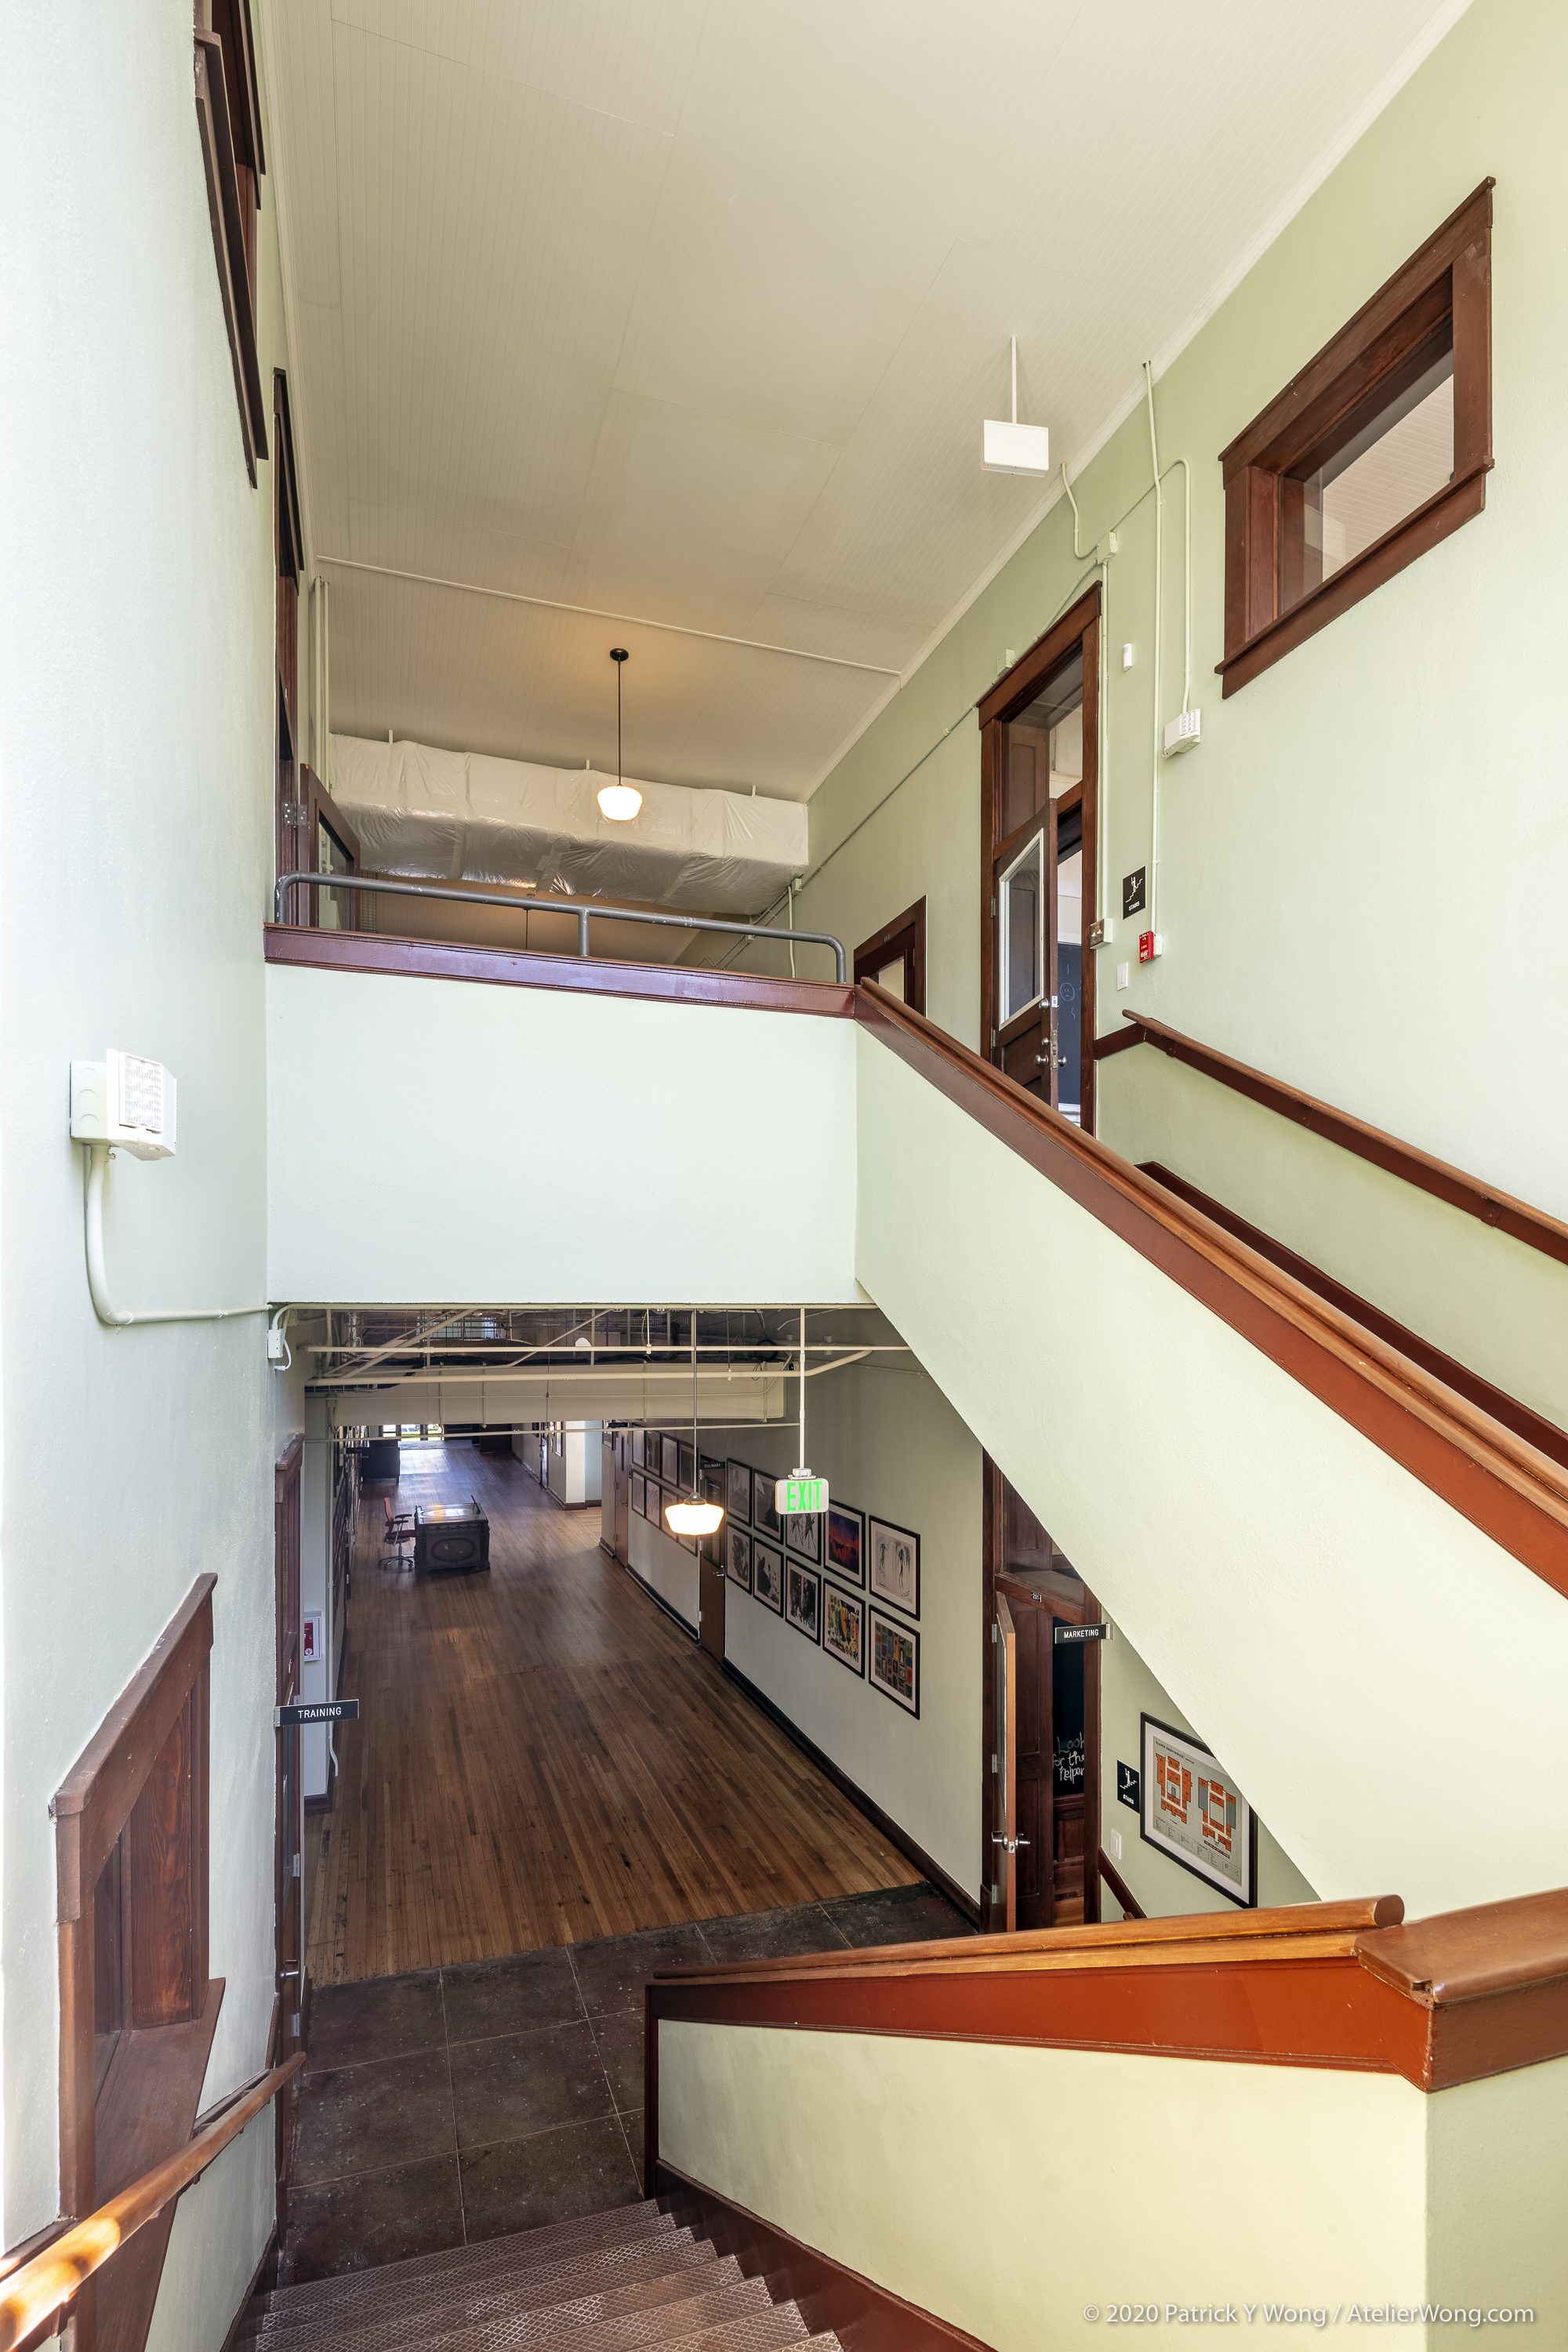 South Stairwell in the Baker School in Austin, Texas